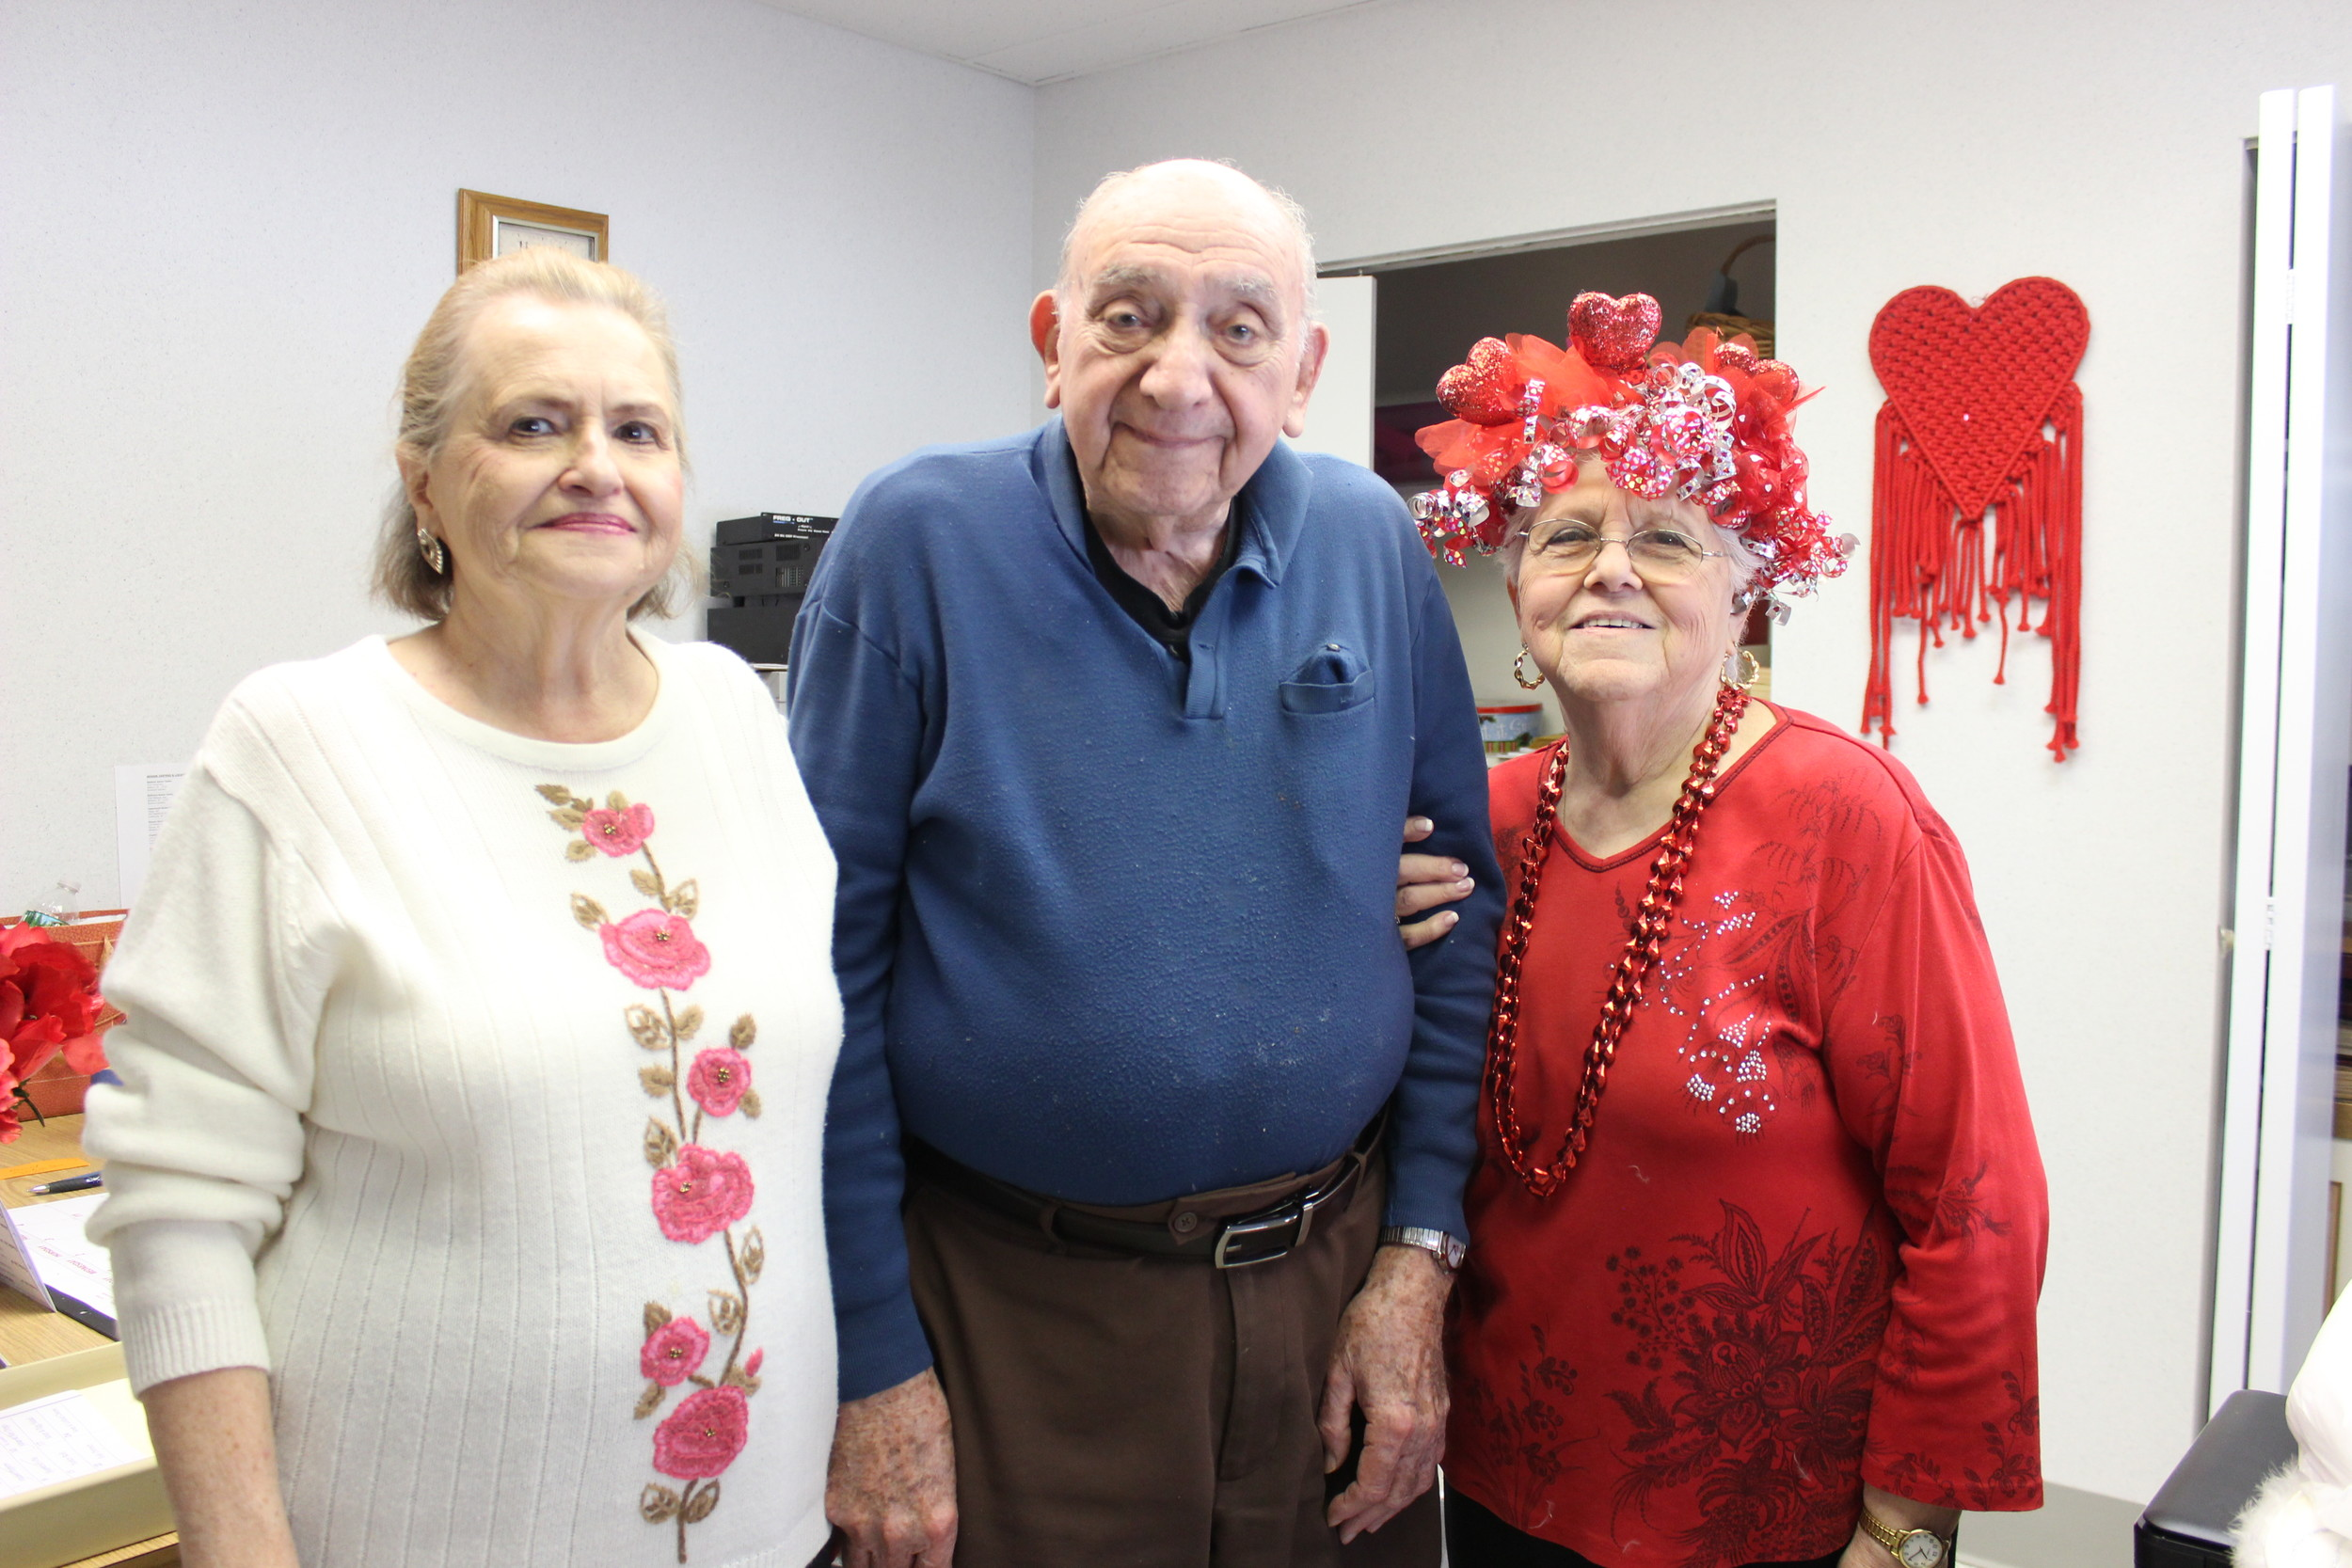 Salisbury Senior Center President Judy Vulpi, far left with Charlie Franza and Phyllis Caggiano, embraced the East Meadow Senior Center members when the centers merged in late December.